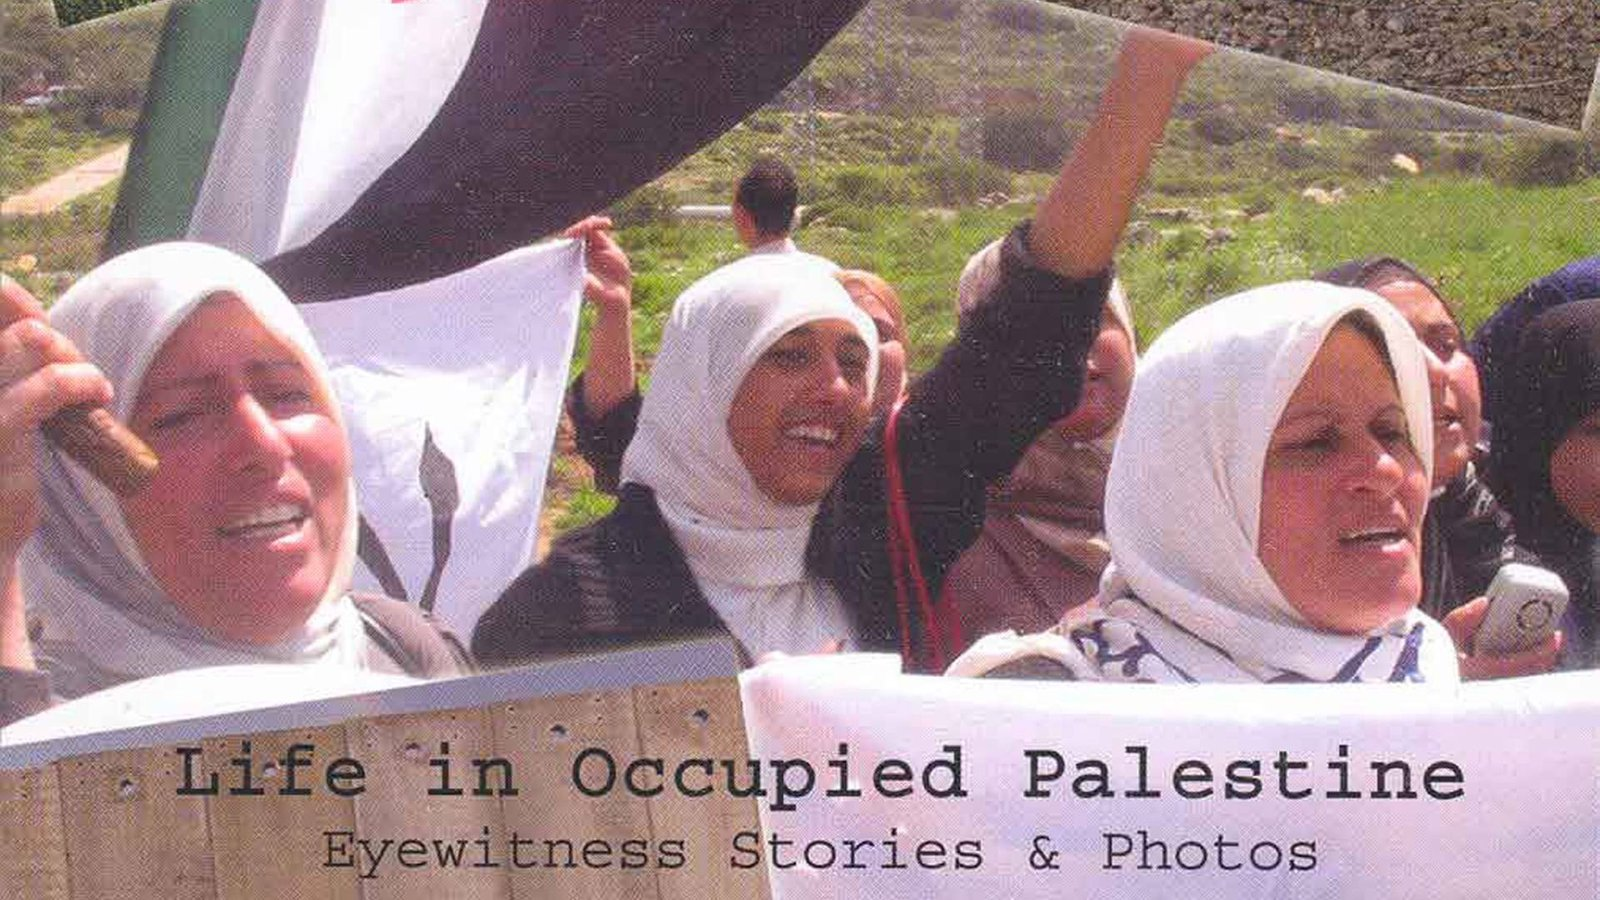 Life in Occupied Palestine - Eyewitness Photos and Stories